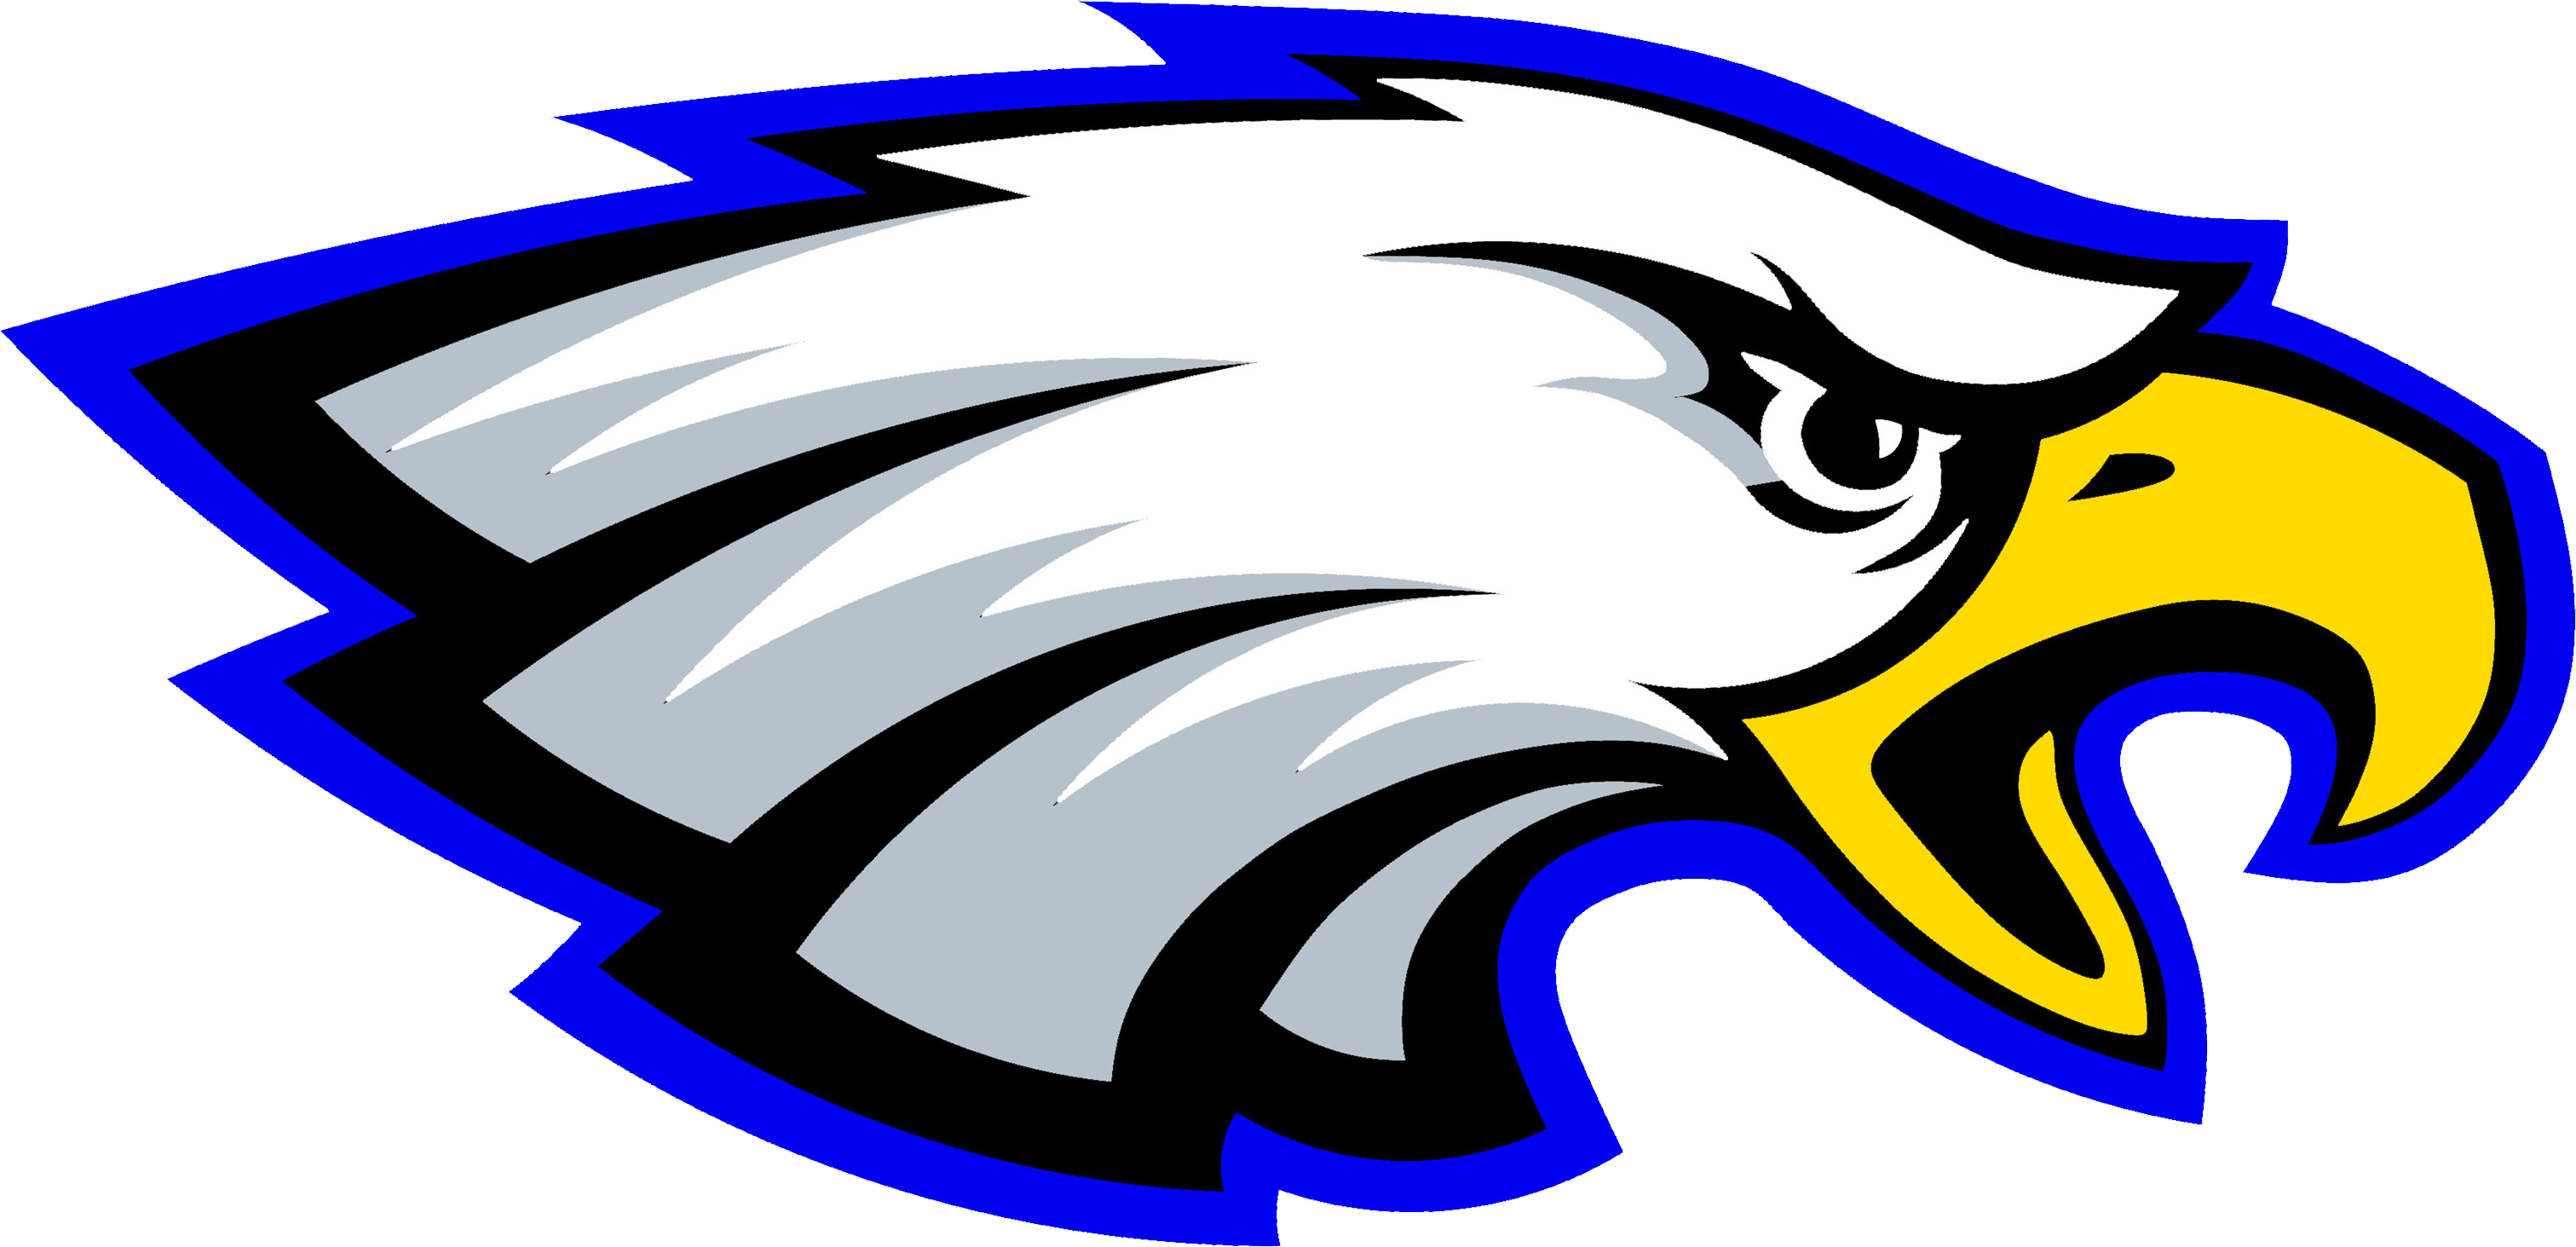 Eagles basketball clipart png library stock Middletown Christian - Team Home Middletown Christian Eagles Sports png library stock